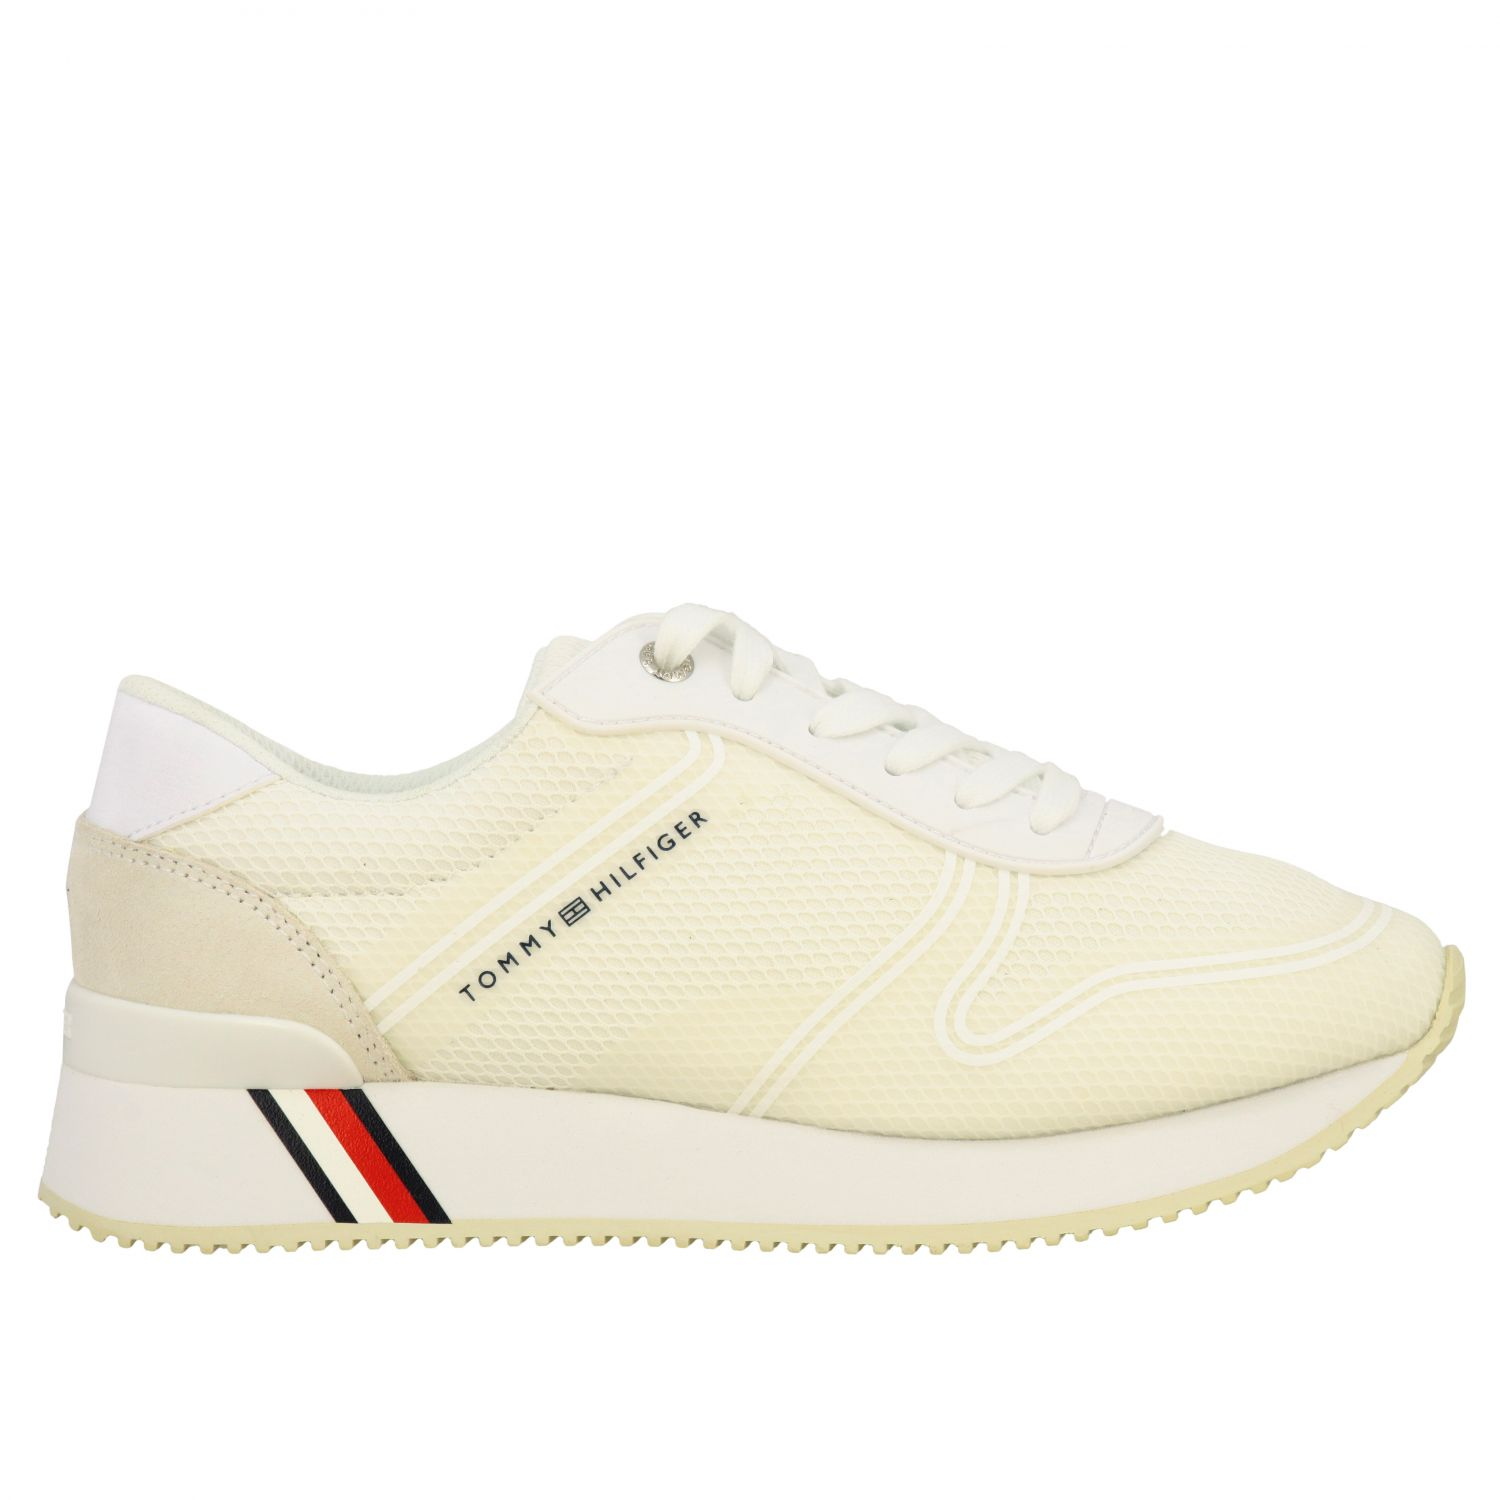 Sneakers donna Tommy Hilfiger bianco 1